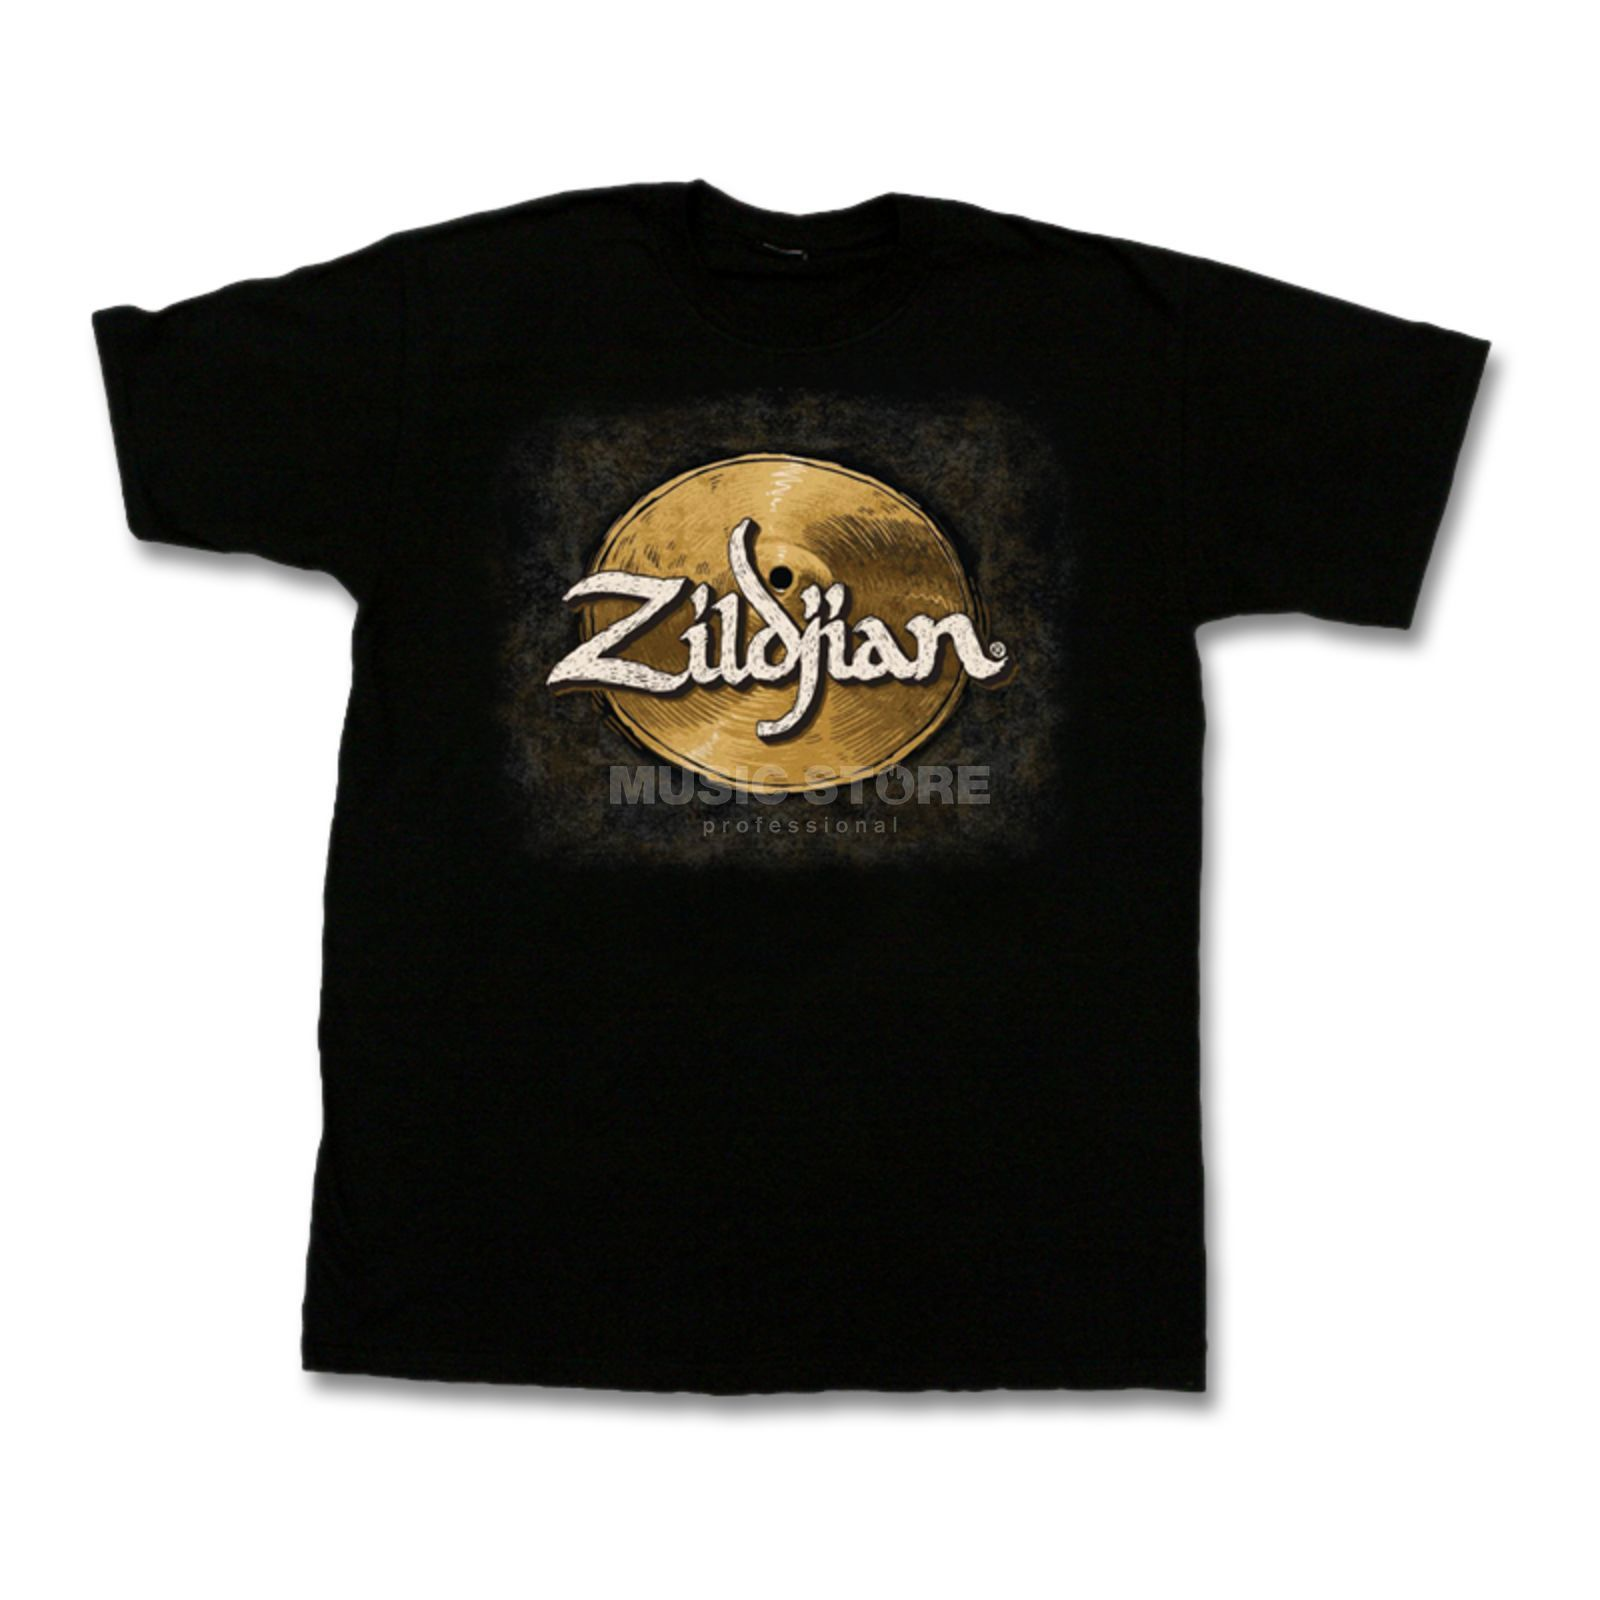 Zildjian T-Shirt Hand-Drawn Black, Large Product Image